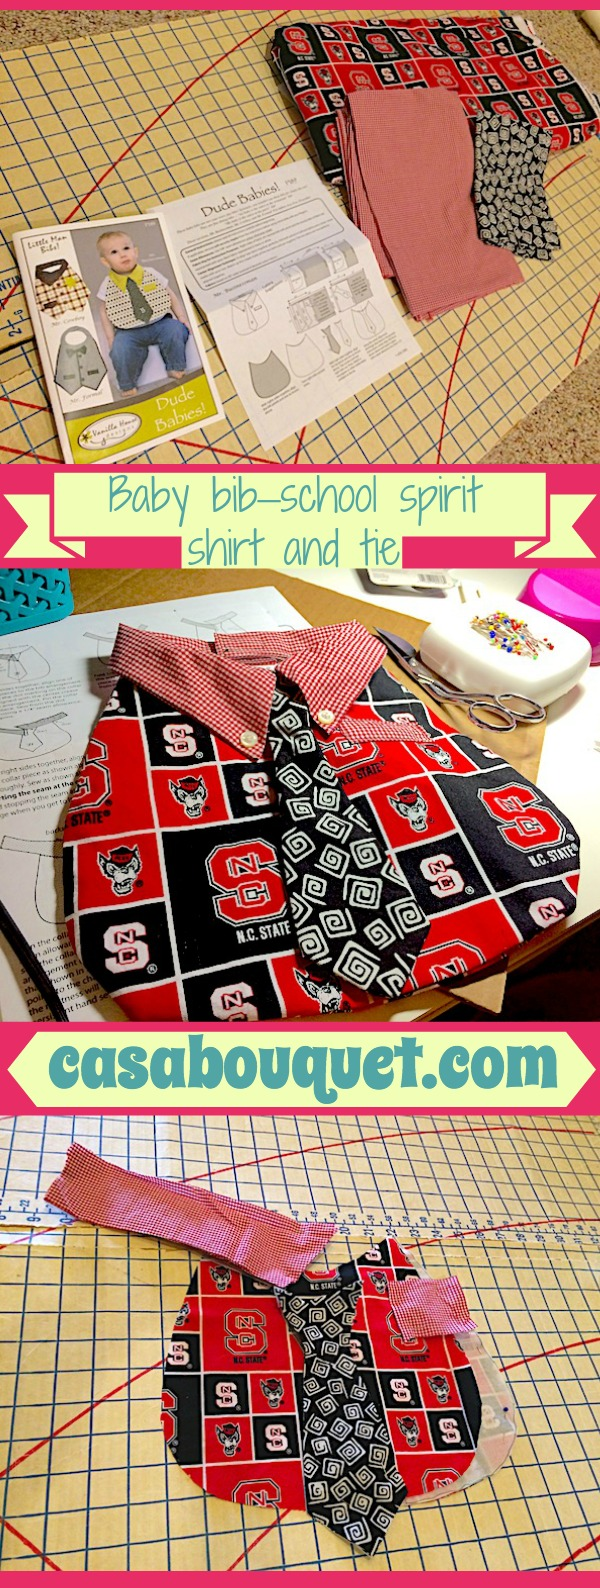 Sewing a school spirit baby bib is a quick diy project that dresses up baby while keeping mealtime neater. Baby bib with necktie uses 3 fabric colors.